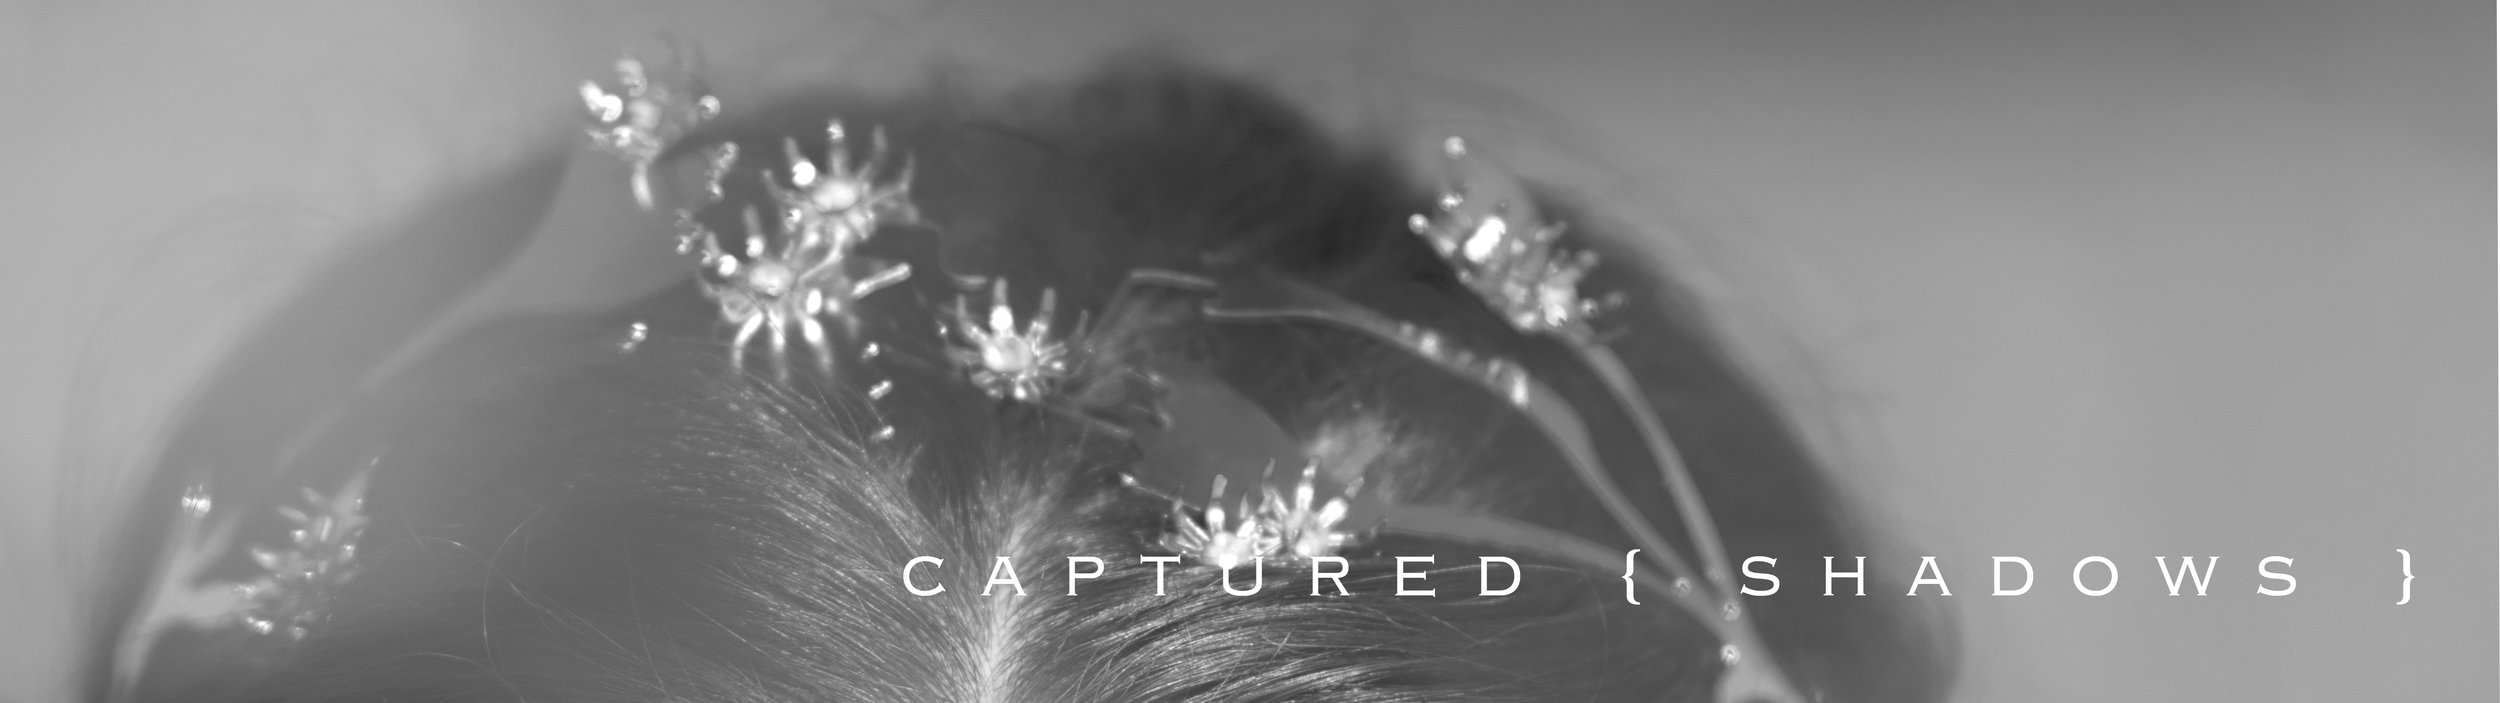 coming to life. wild roots plucked from my morning stroll have been reborn into sleek, simplistic, modern day crowns. what started as a single shadow trace was then digitized and applied to modern materials - bringing you nothing but completely authentic detail.